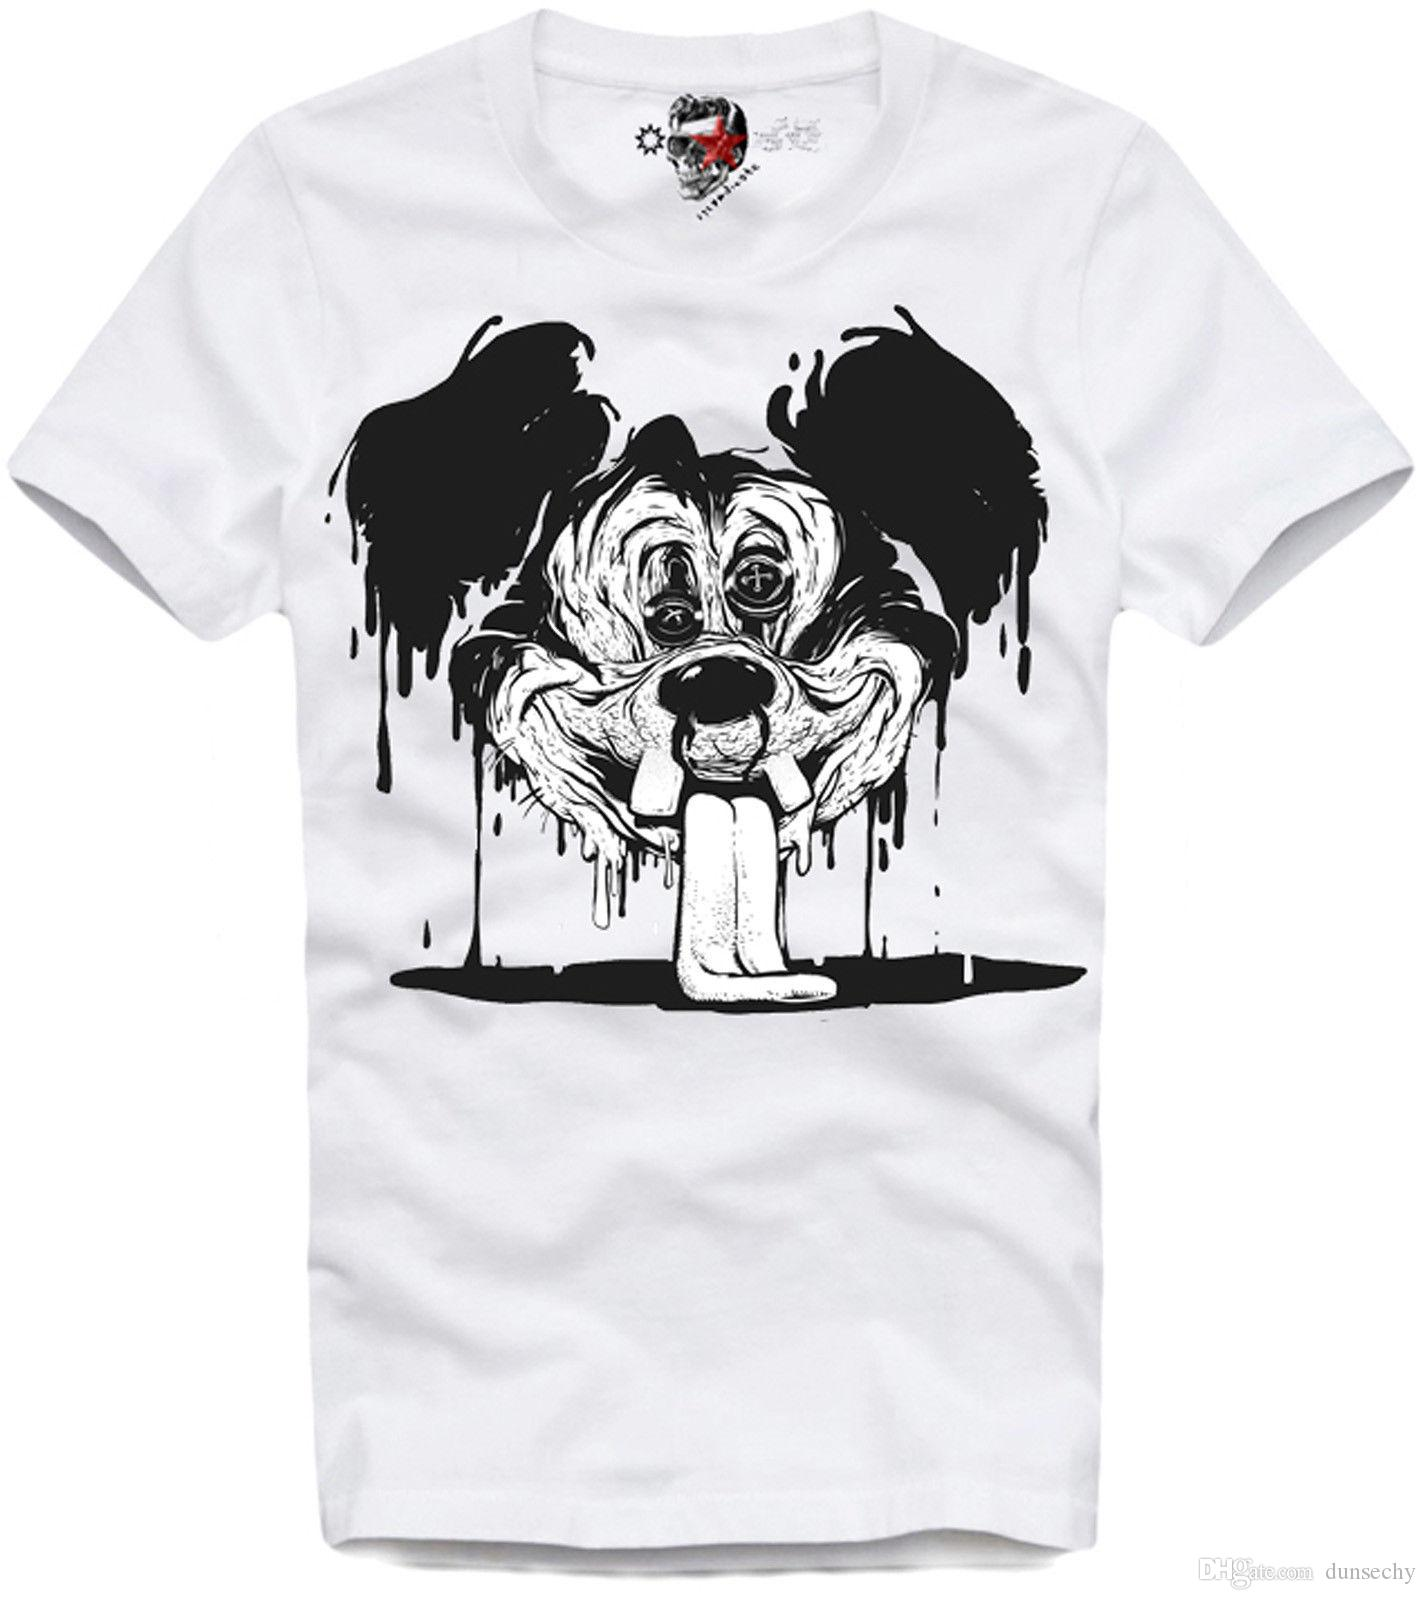 be6ed190 E1SYNDICATE T SHIRT SNEAKER Top Tee PARISTop TeeELEVEN HYPEBEAST 3329 T  Shirt Sale Cool Shirt Designs From Dunsechy, $11.48  DHgate.Com